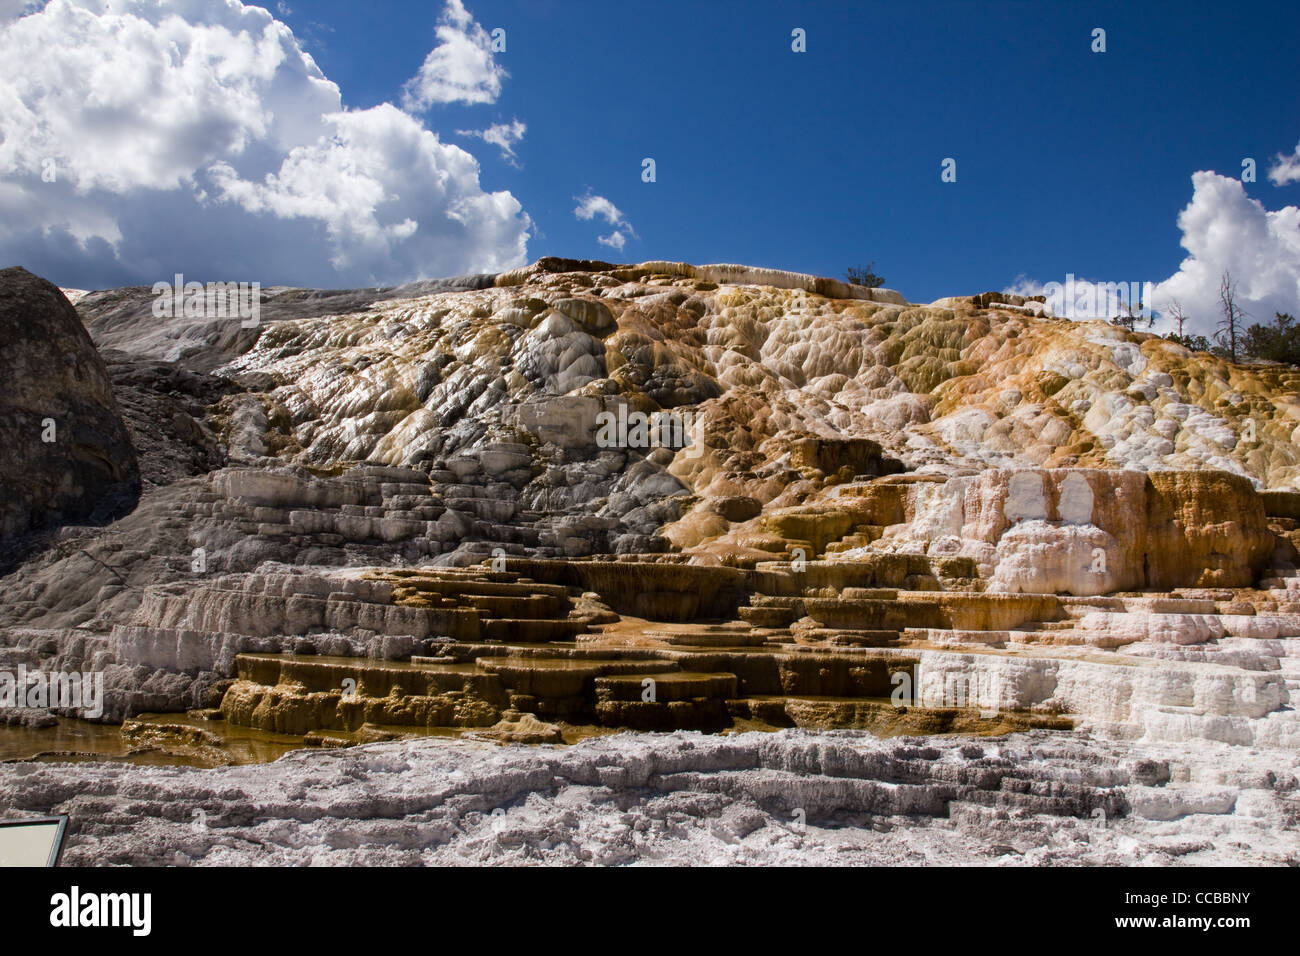 C'est l'une des terrasses à Mammoth Hot Springs In Yellowstone Photo Stock